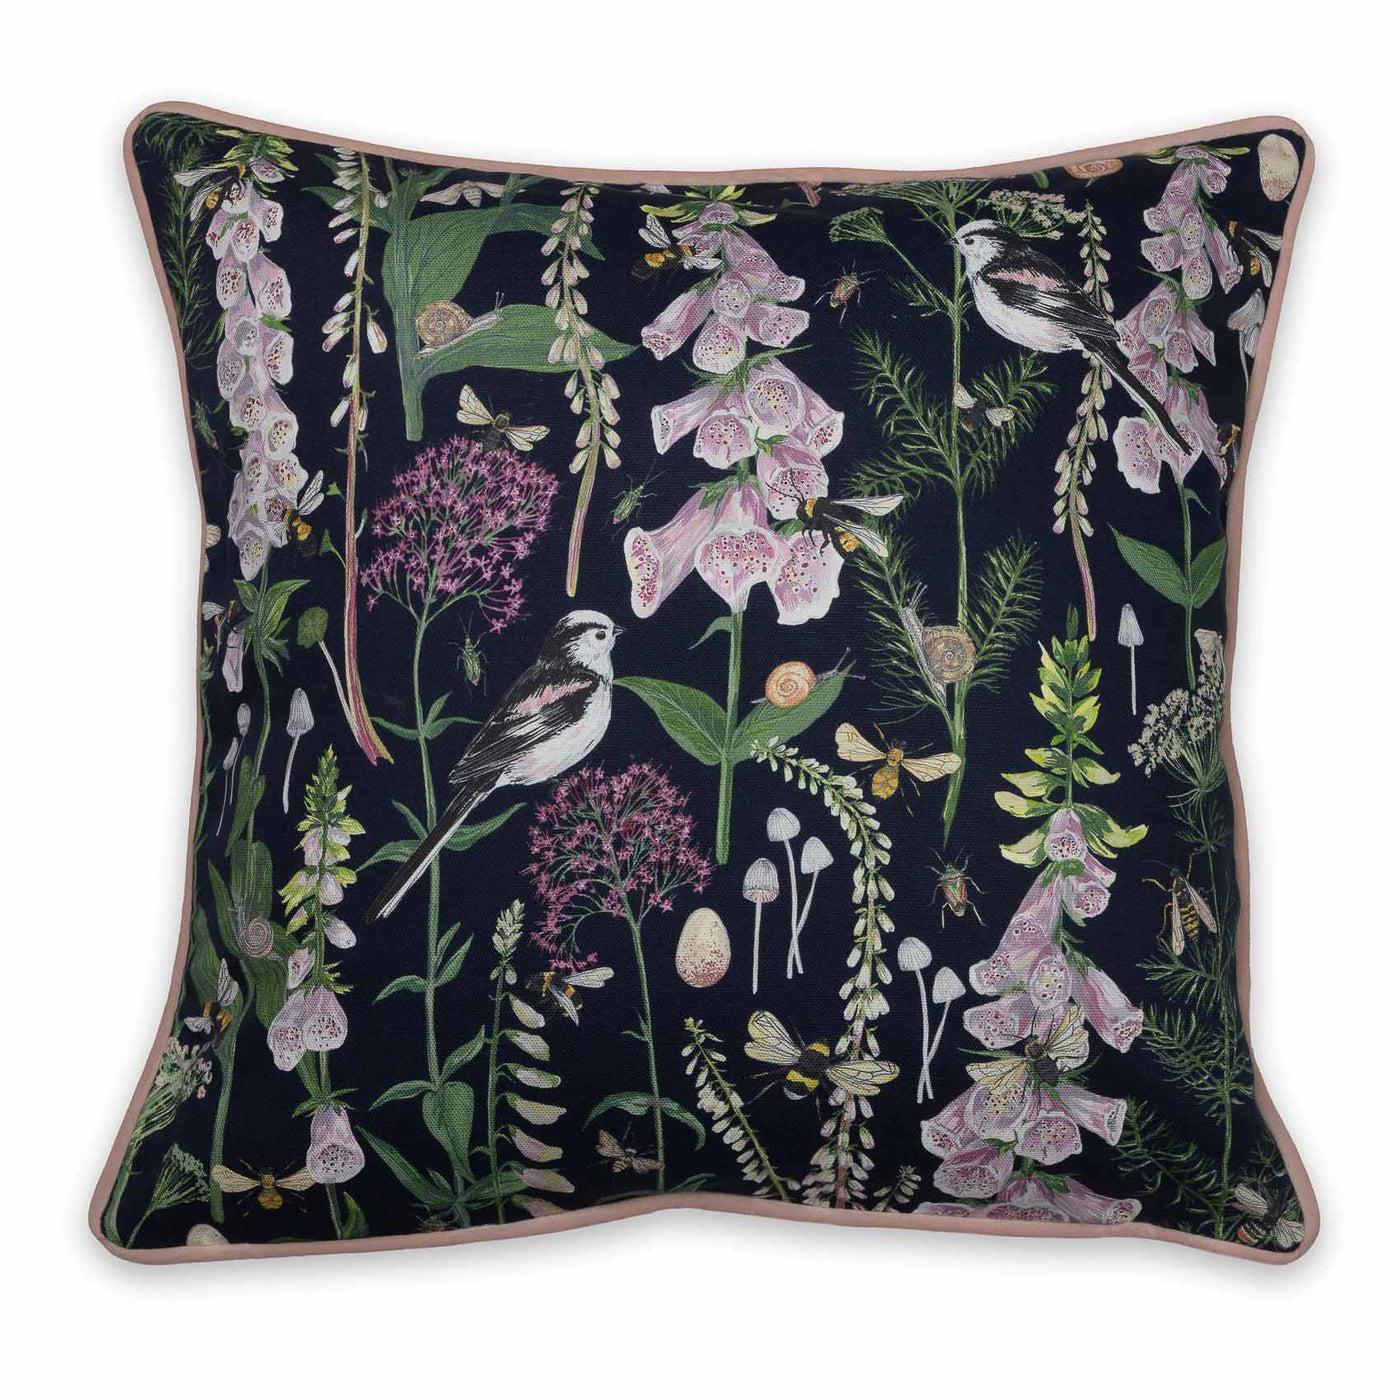 Longtail and Foxglove Cushion - Navy